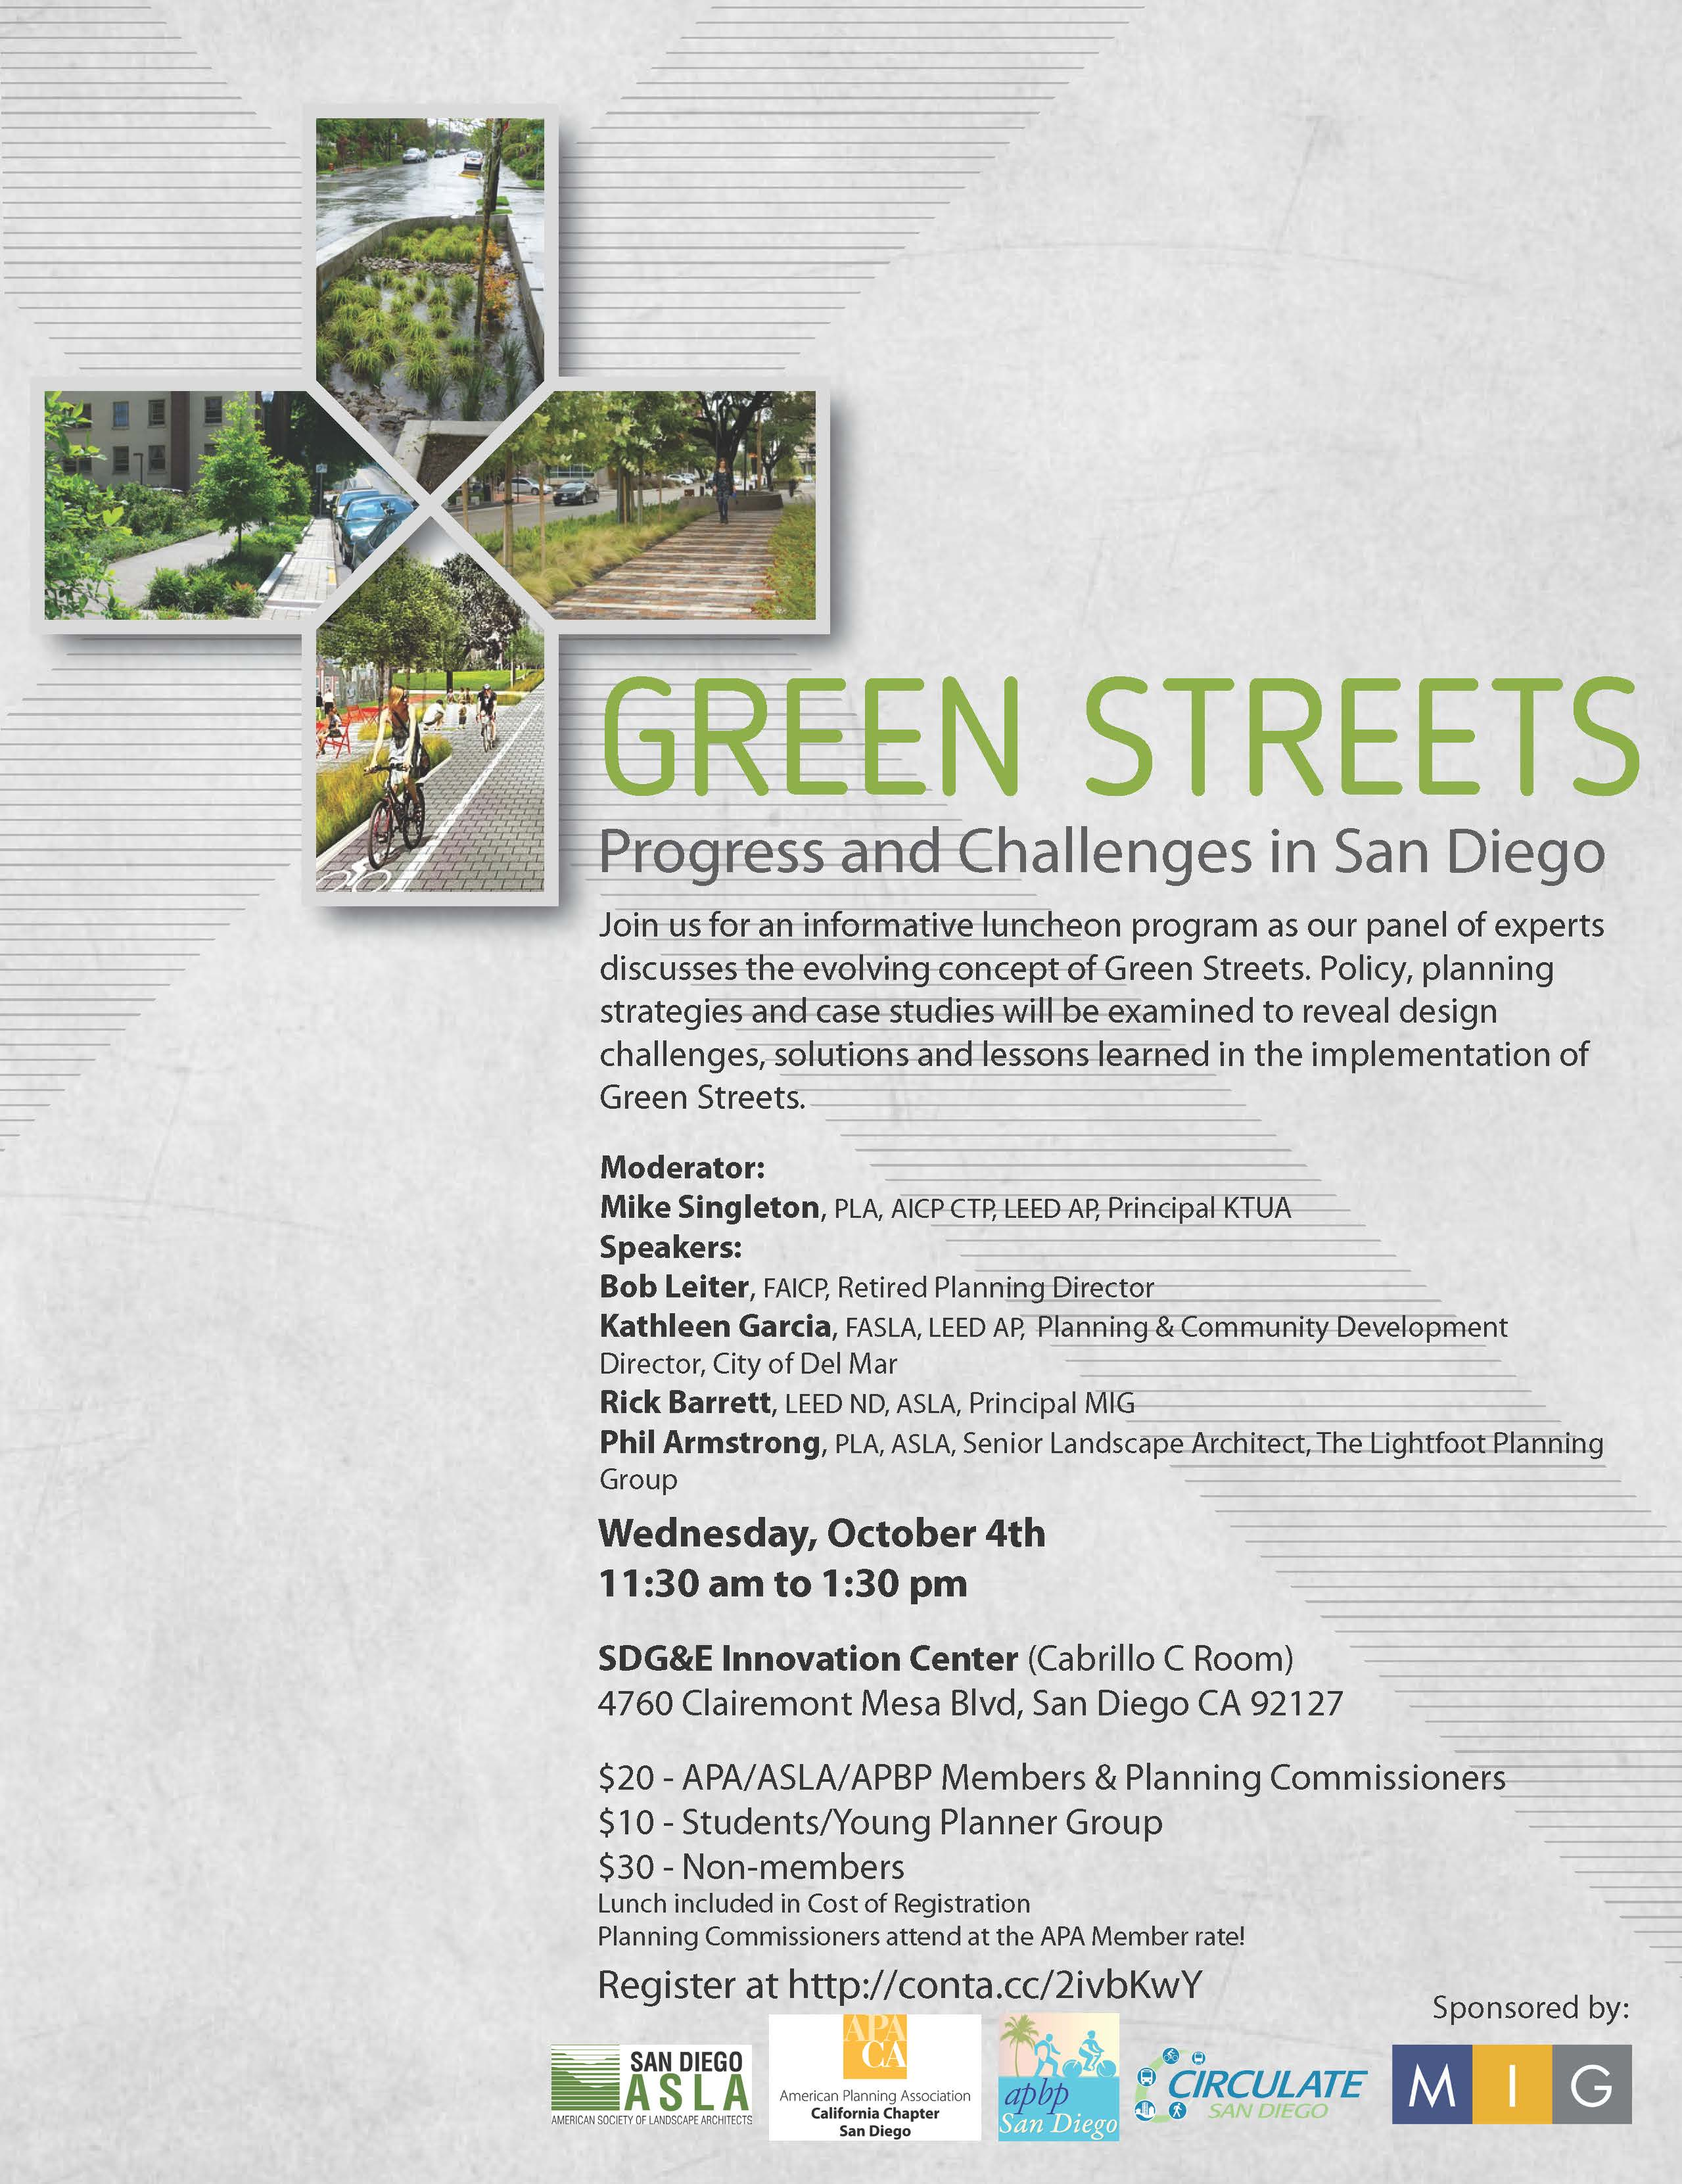 Green_Streets_Event_Flyer_v6.jpg